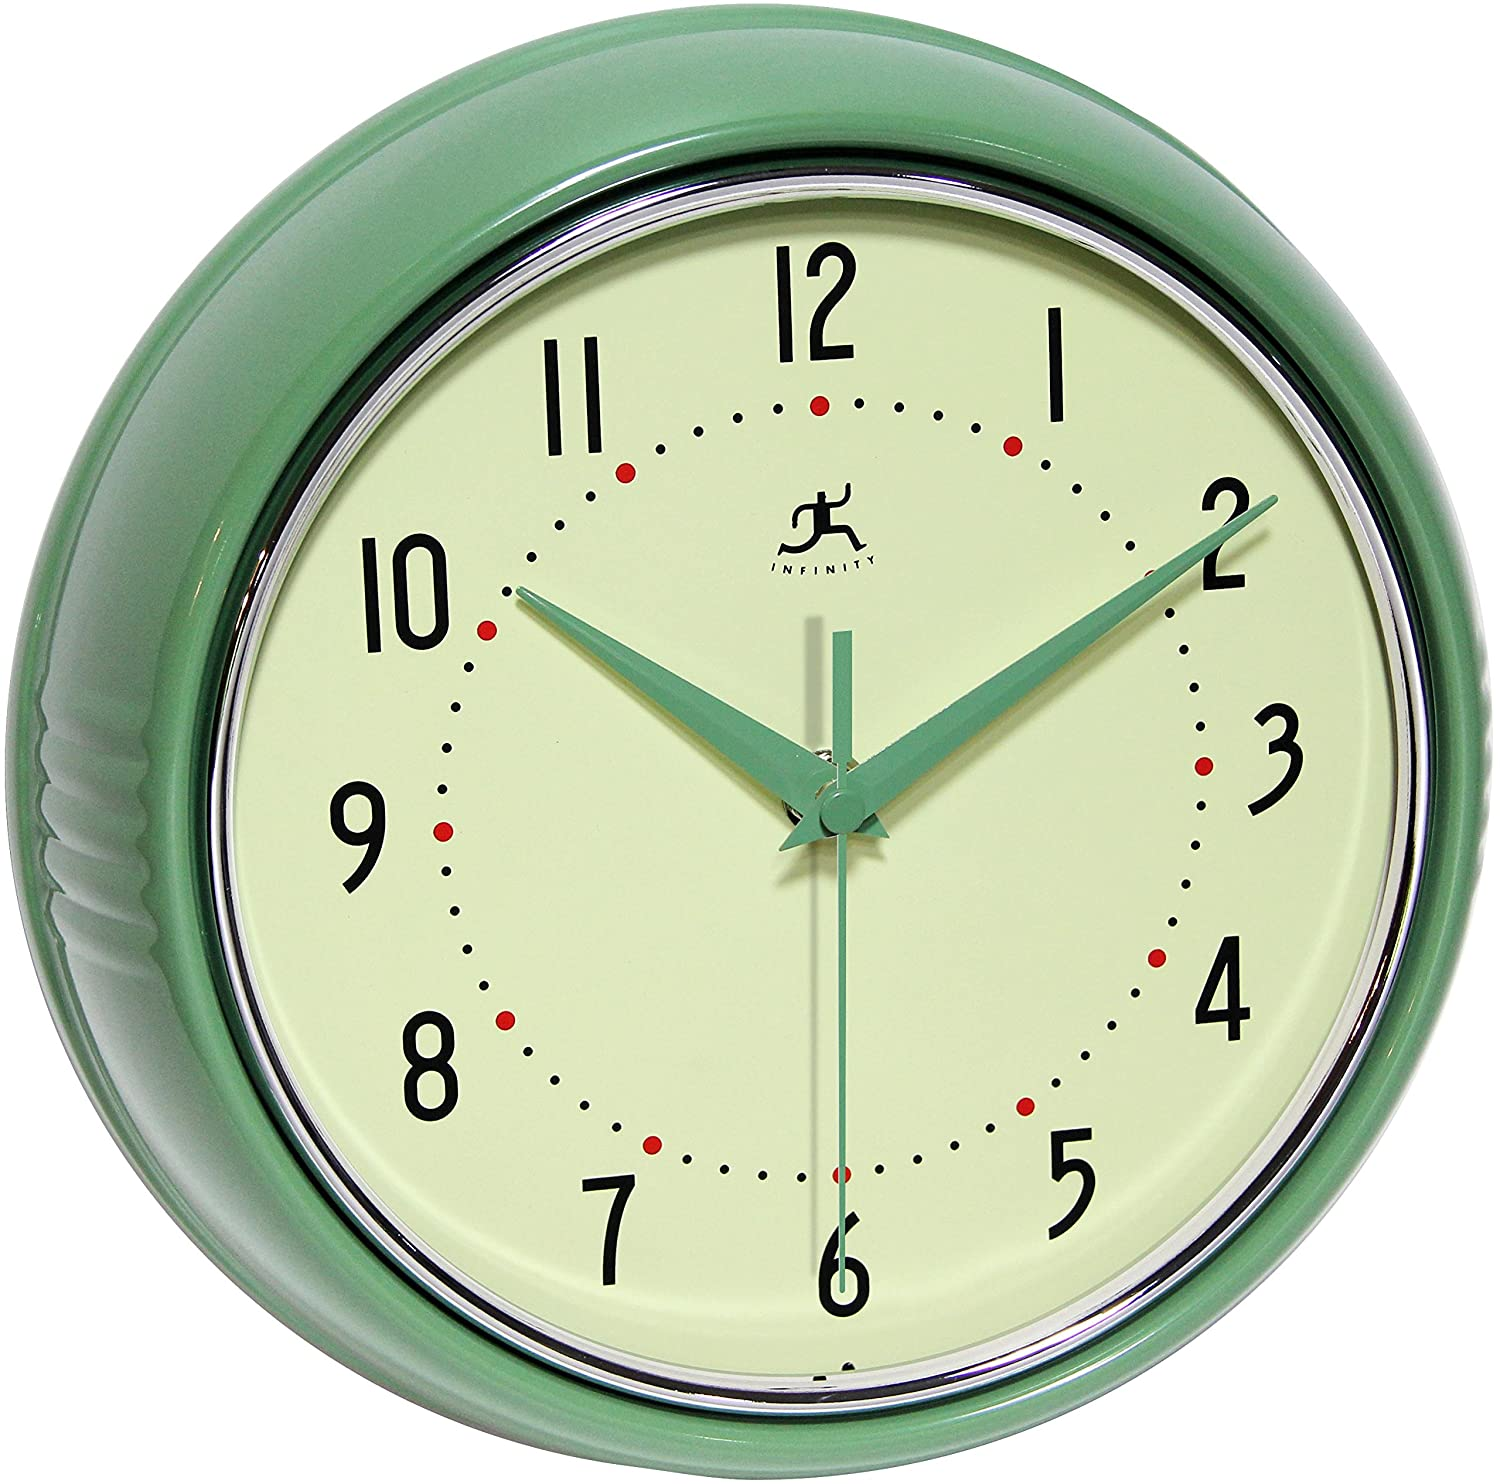 Retro 9-1/2-Inch Round Metal Wall Clock,